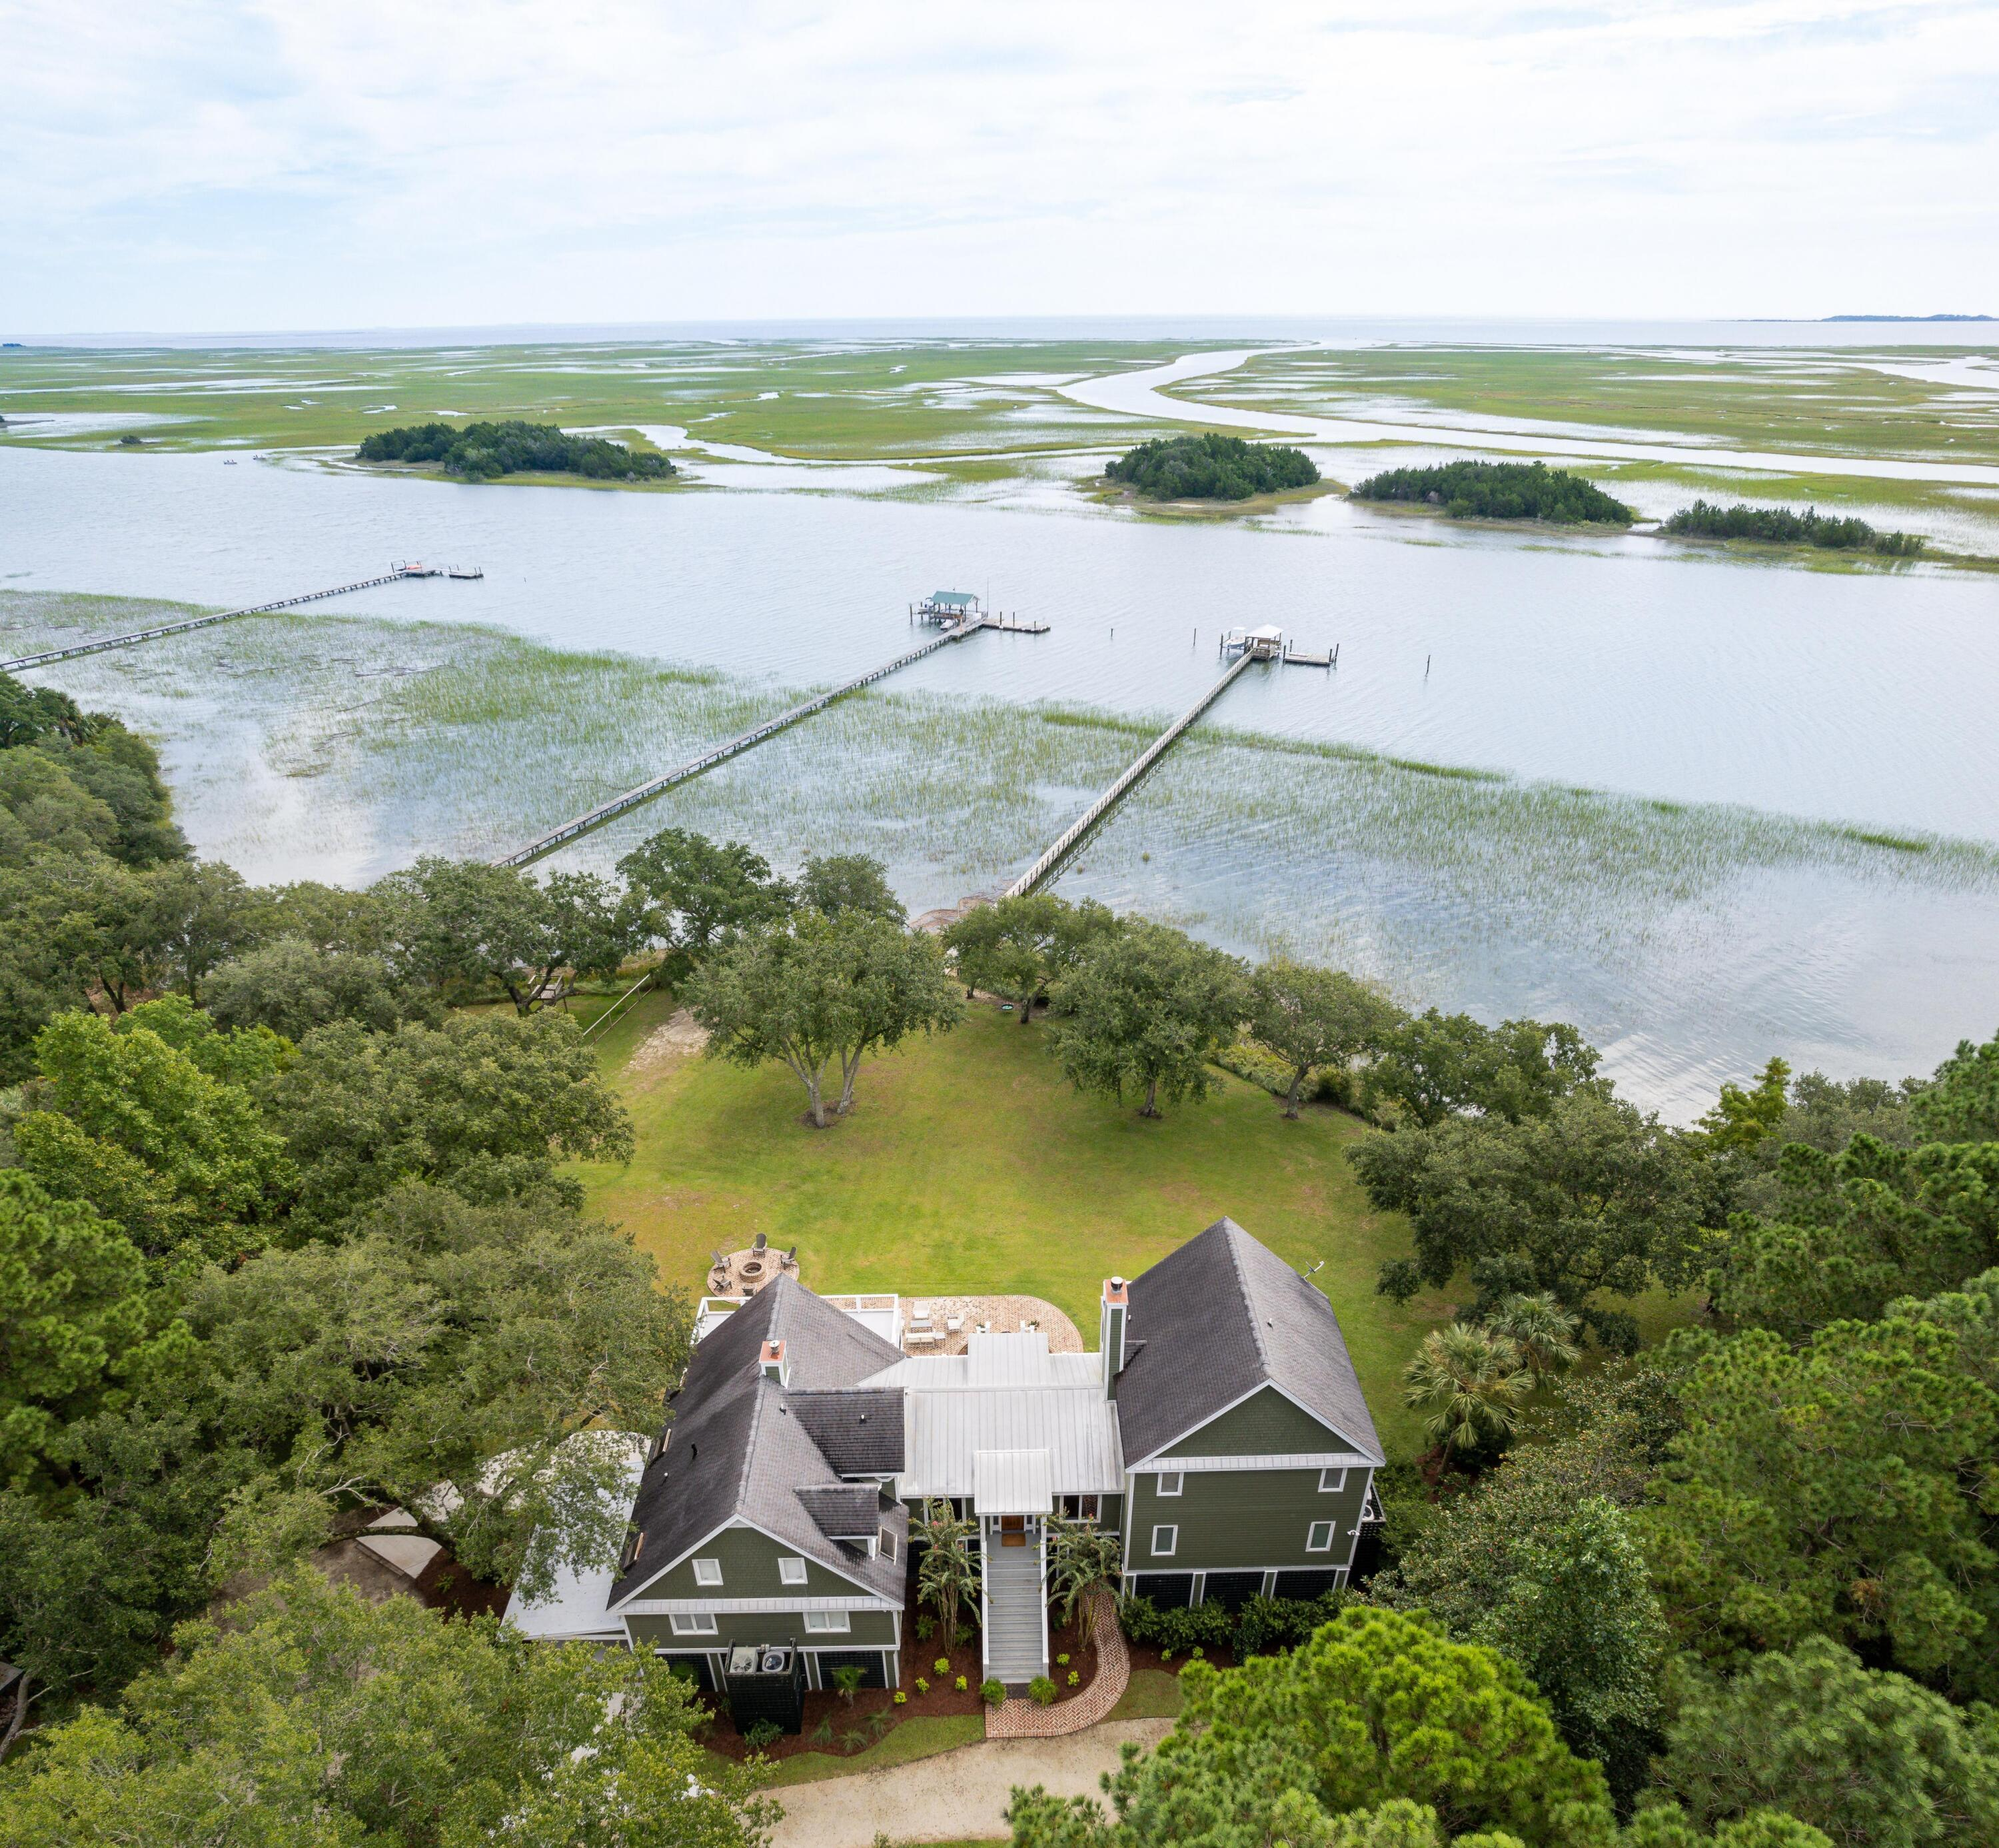 6461 Come About Way NULL Awendaw $2,500,000.00